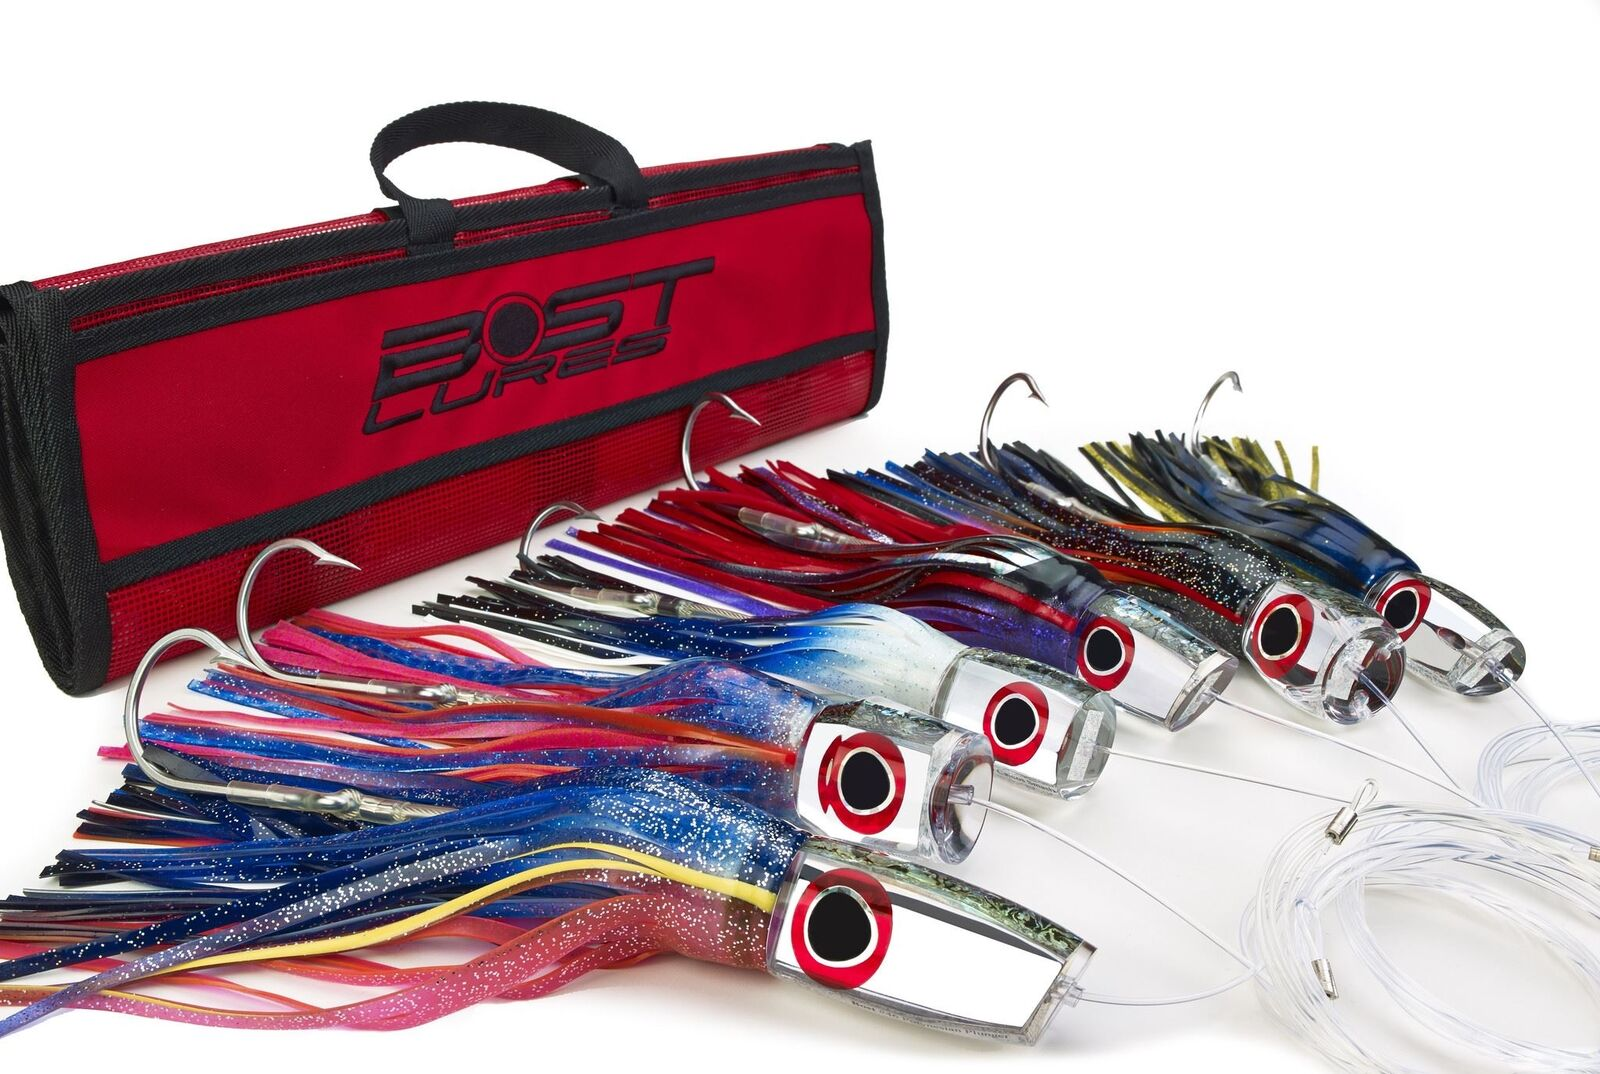 Large Mirrored Marlin Lure Pack by Bost - Rigged/Un-Rigged